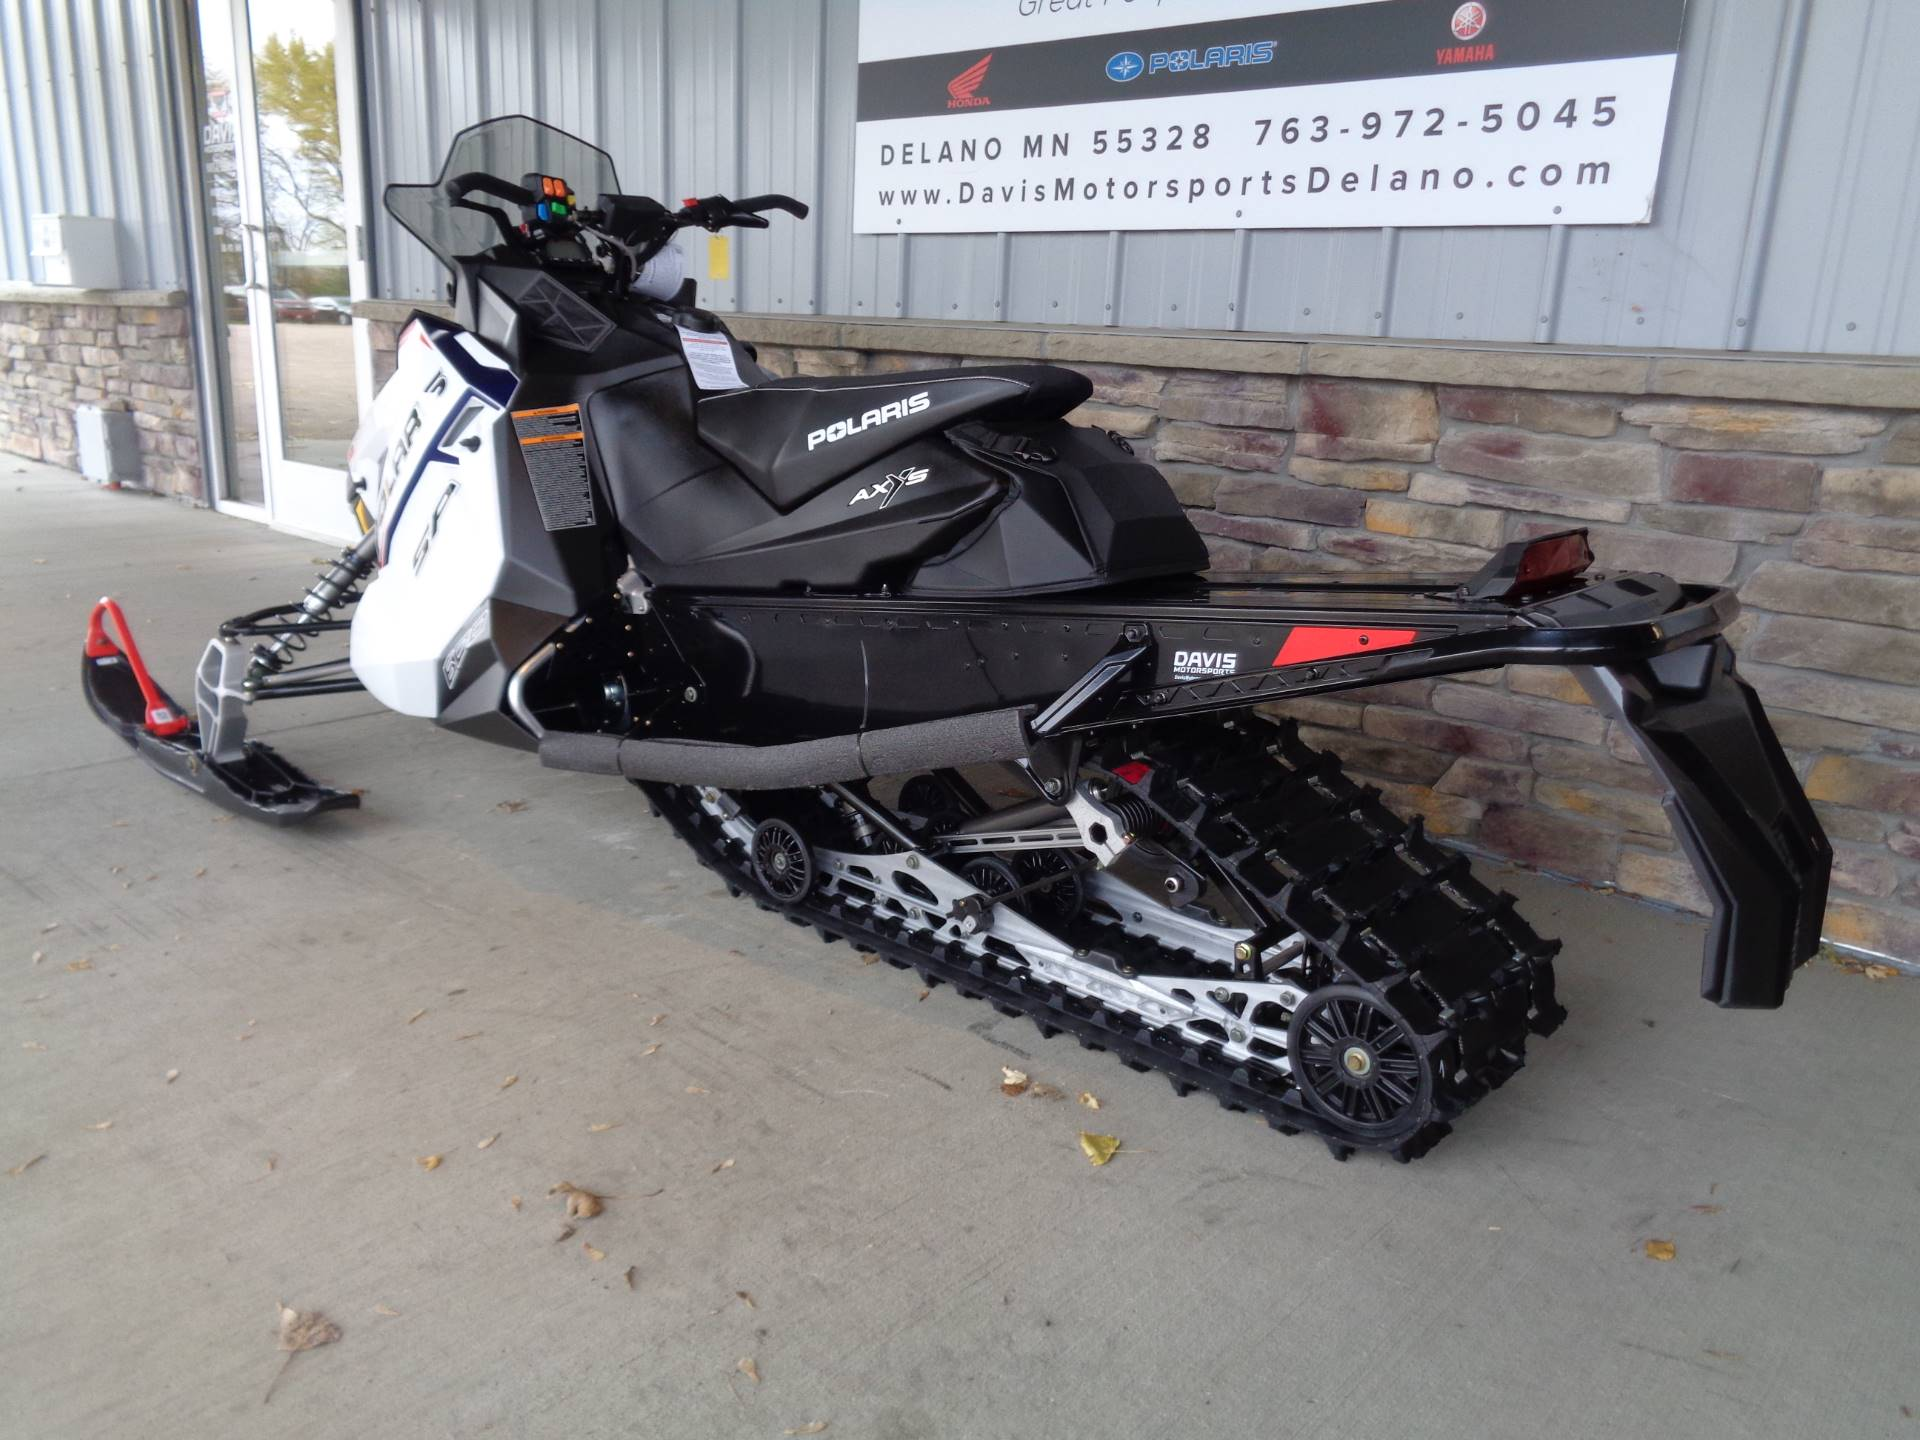 2020 Polaris 600 Indy SP 137 ES in Delano, Minnesota - Photo 6